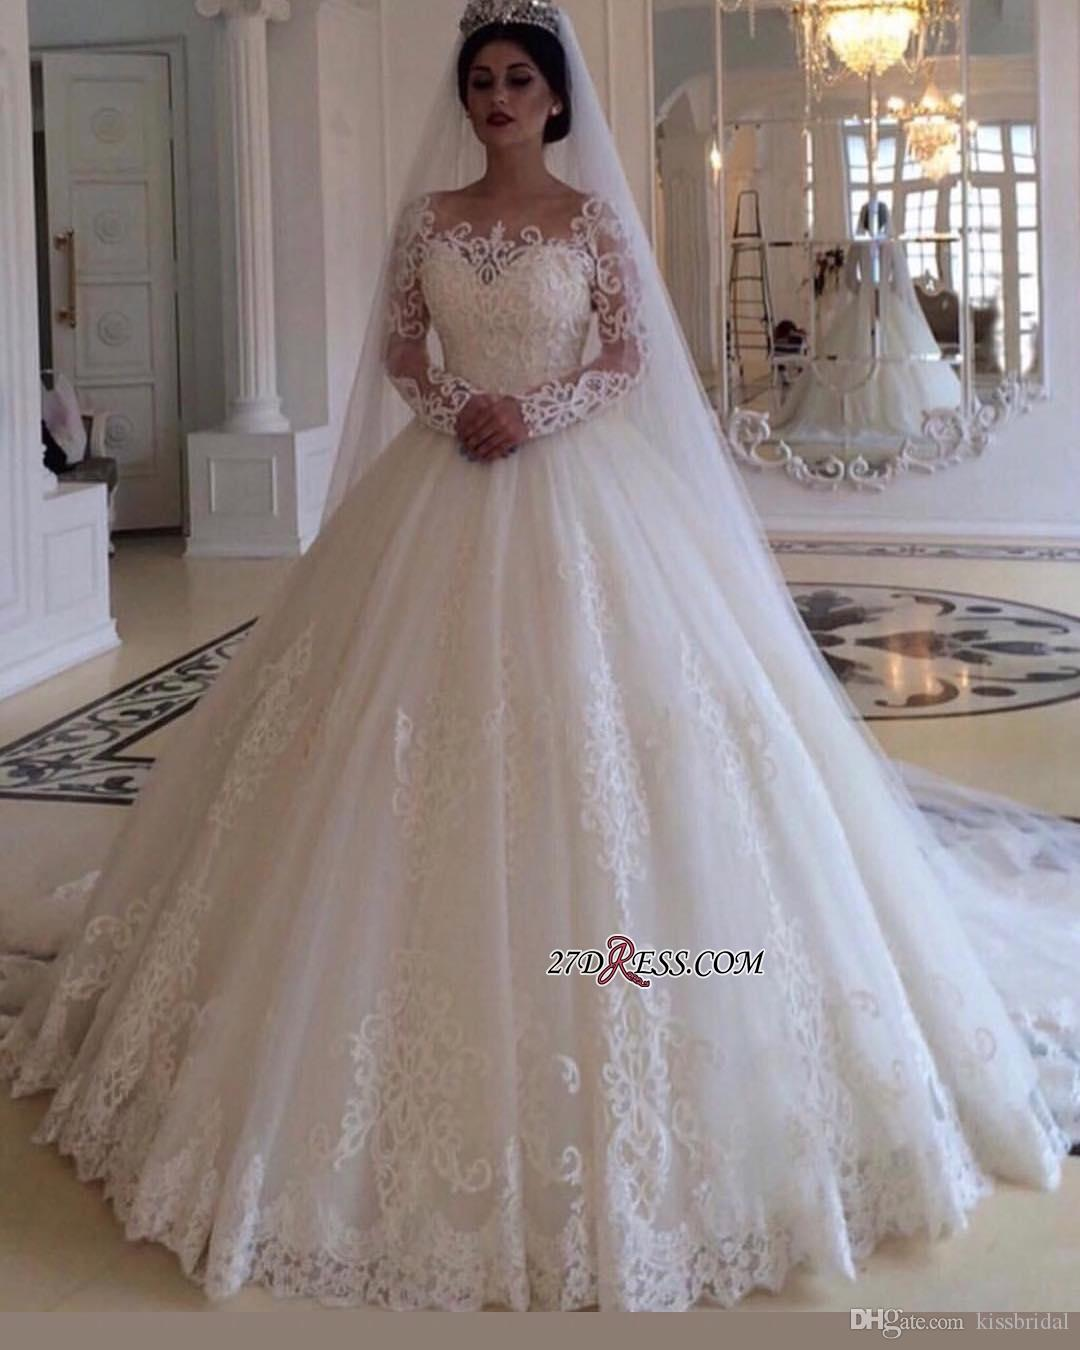 Bridal Dresses 2019: Long Sleeve Lace Wedding Dresses 2019 Elegant Ball Gown